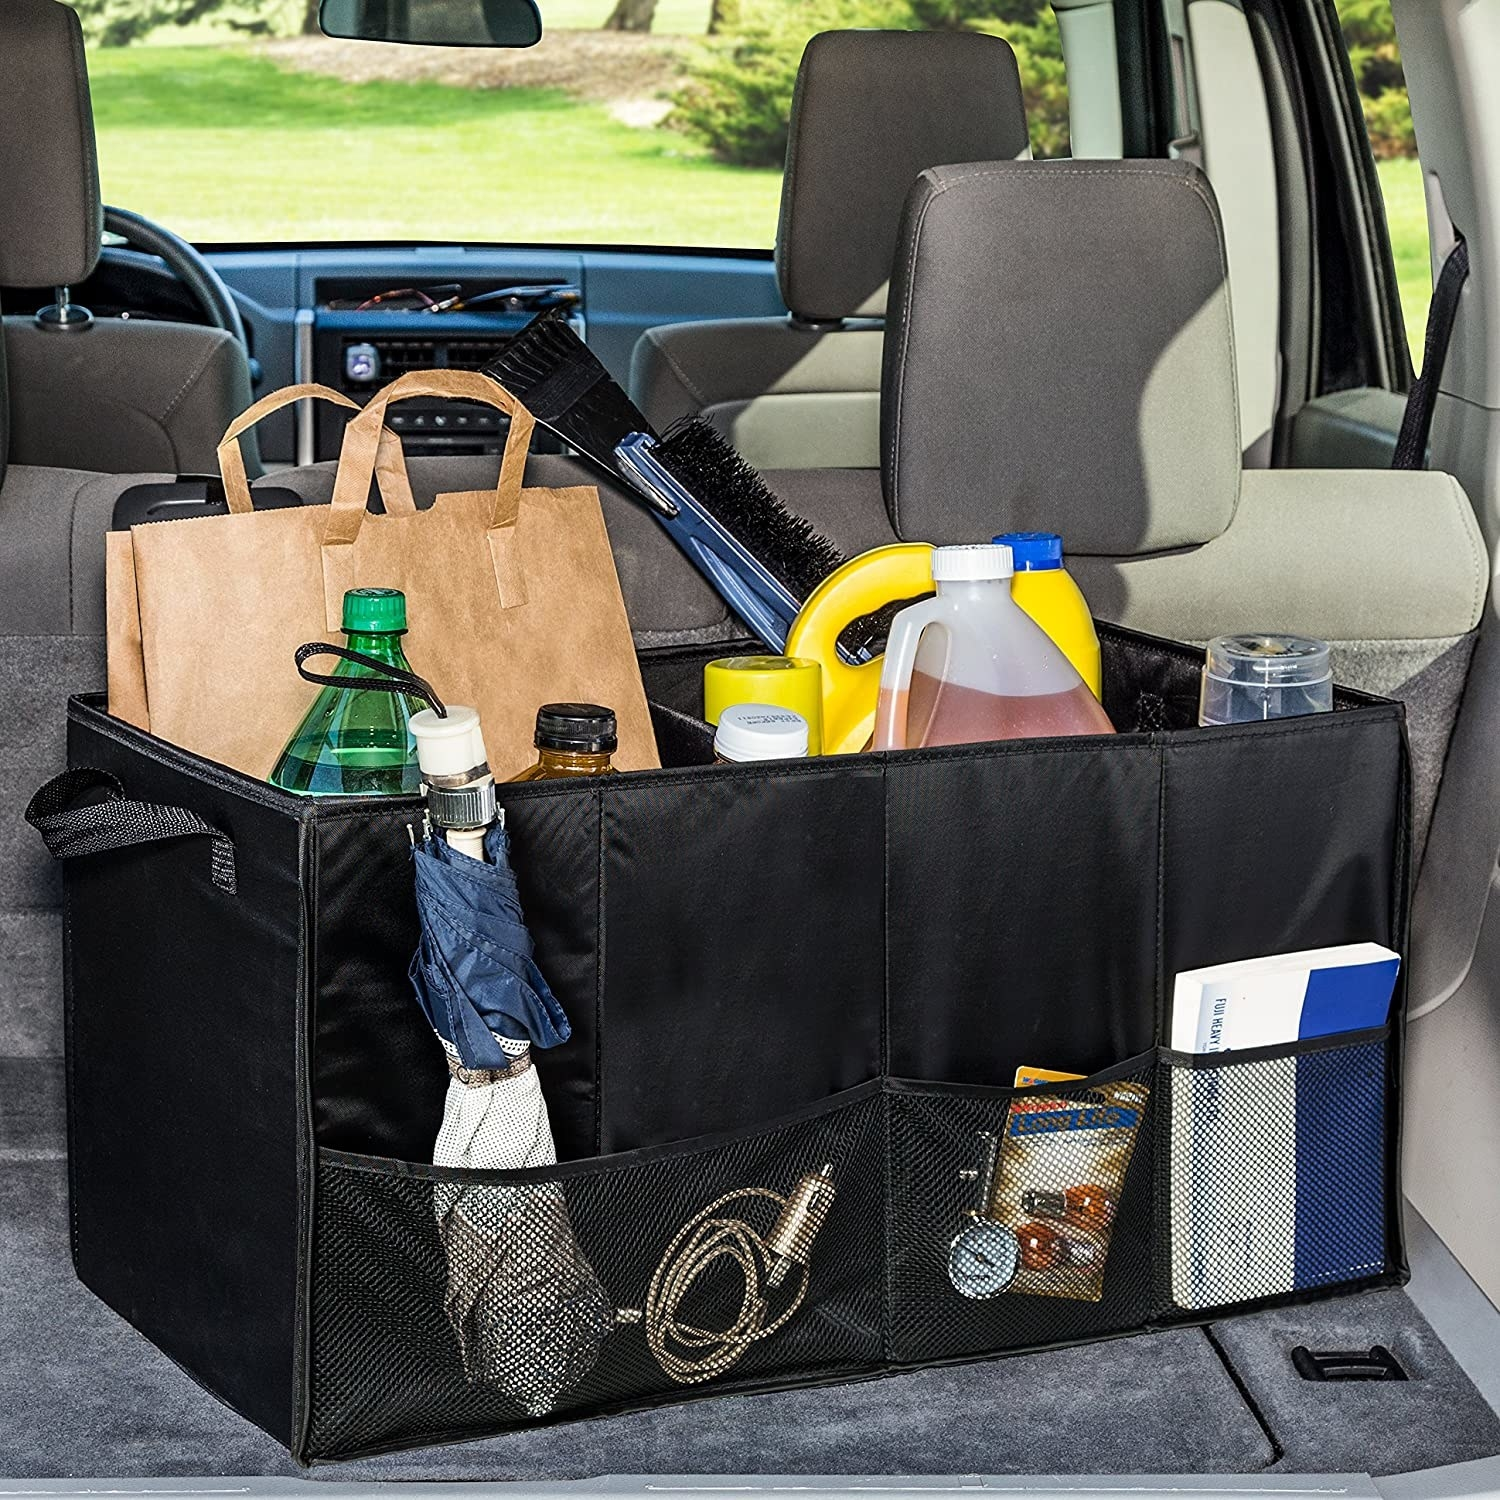 A black trunk organizer filled with bags, bottles, and car supplies